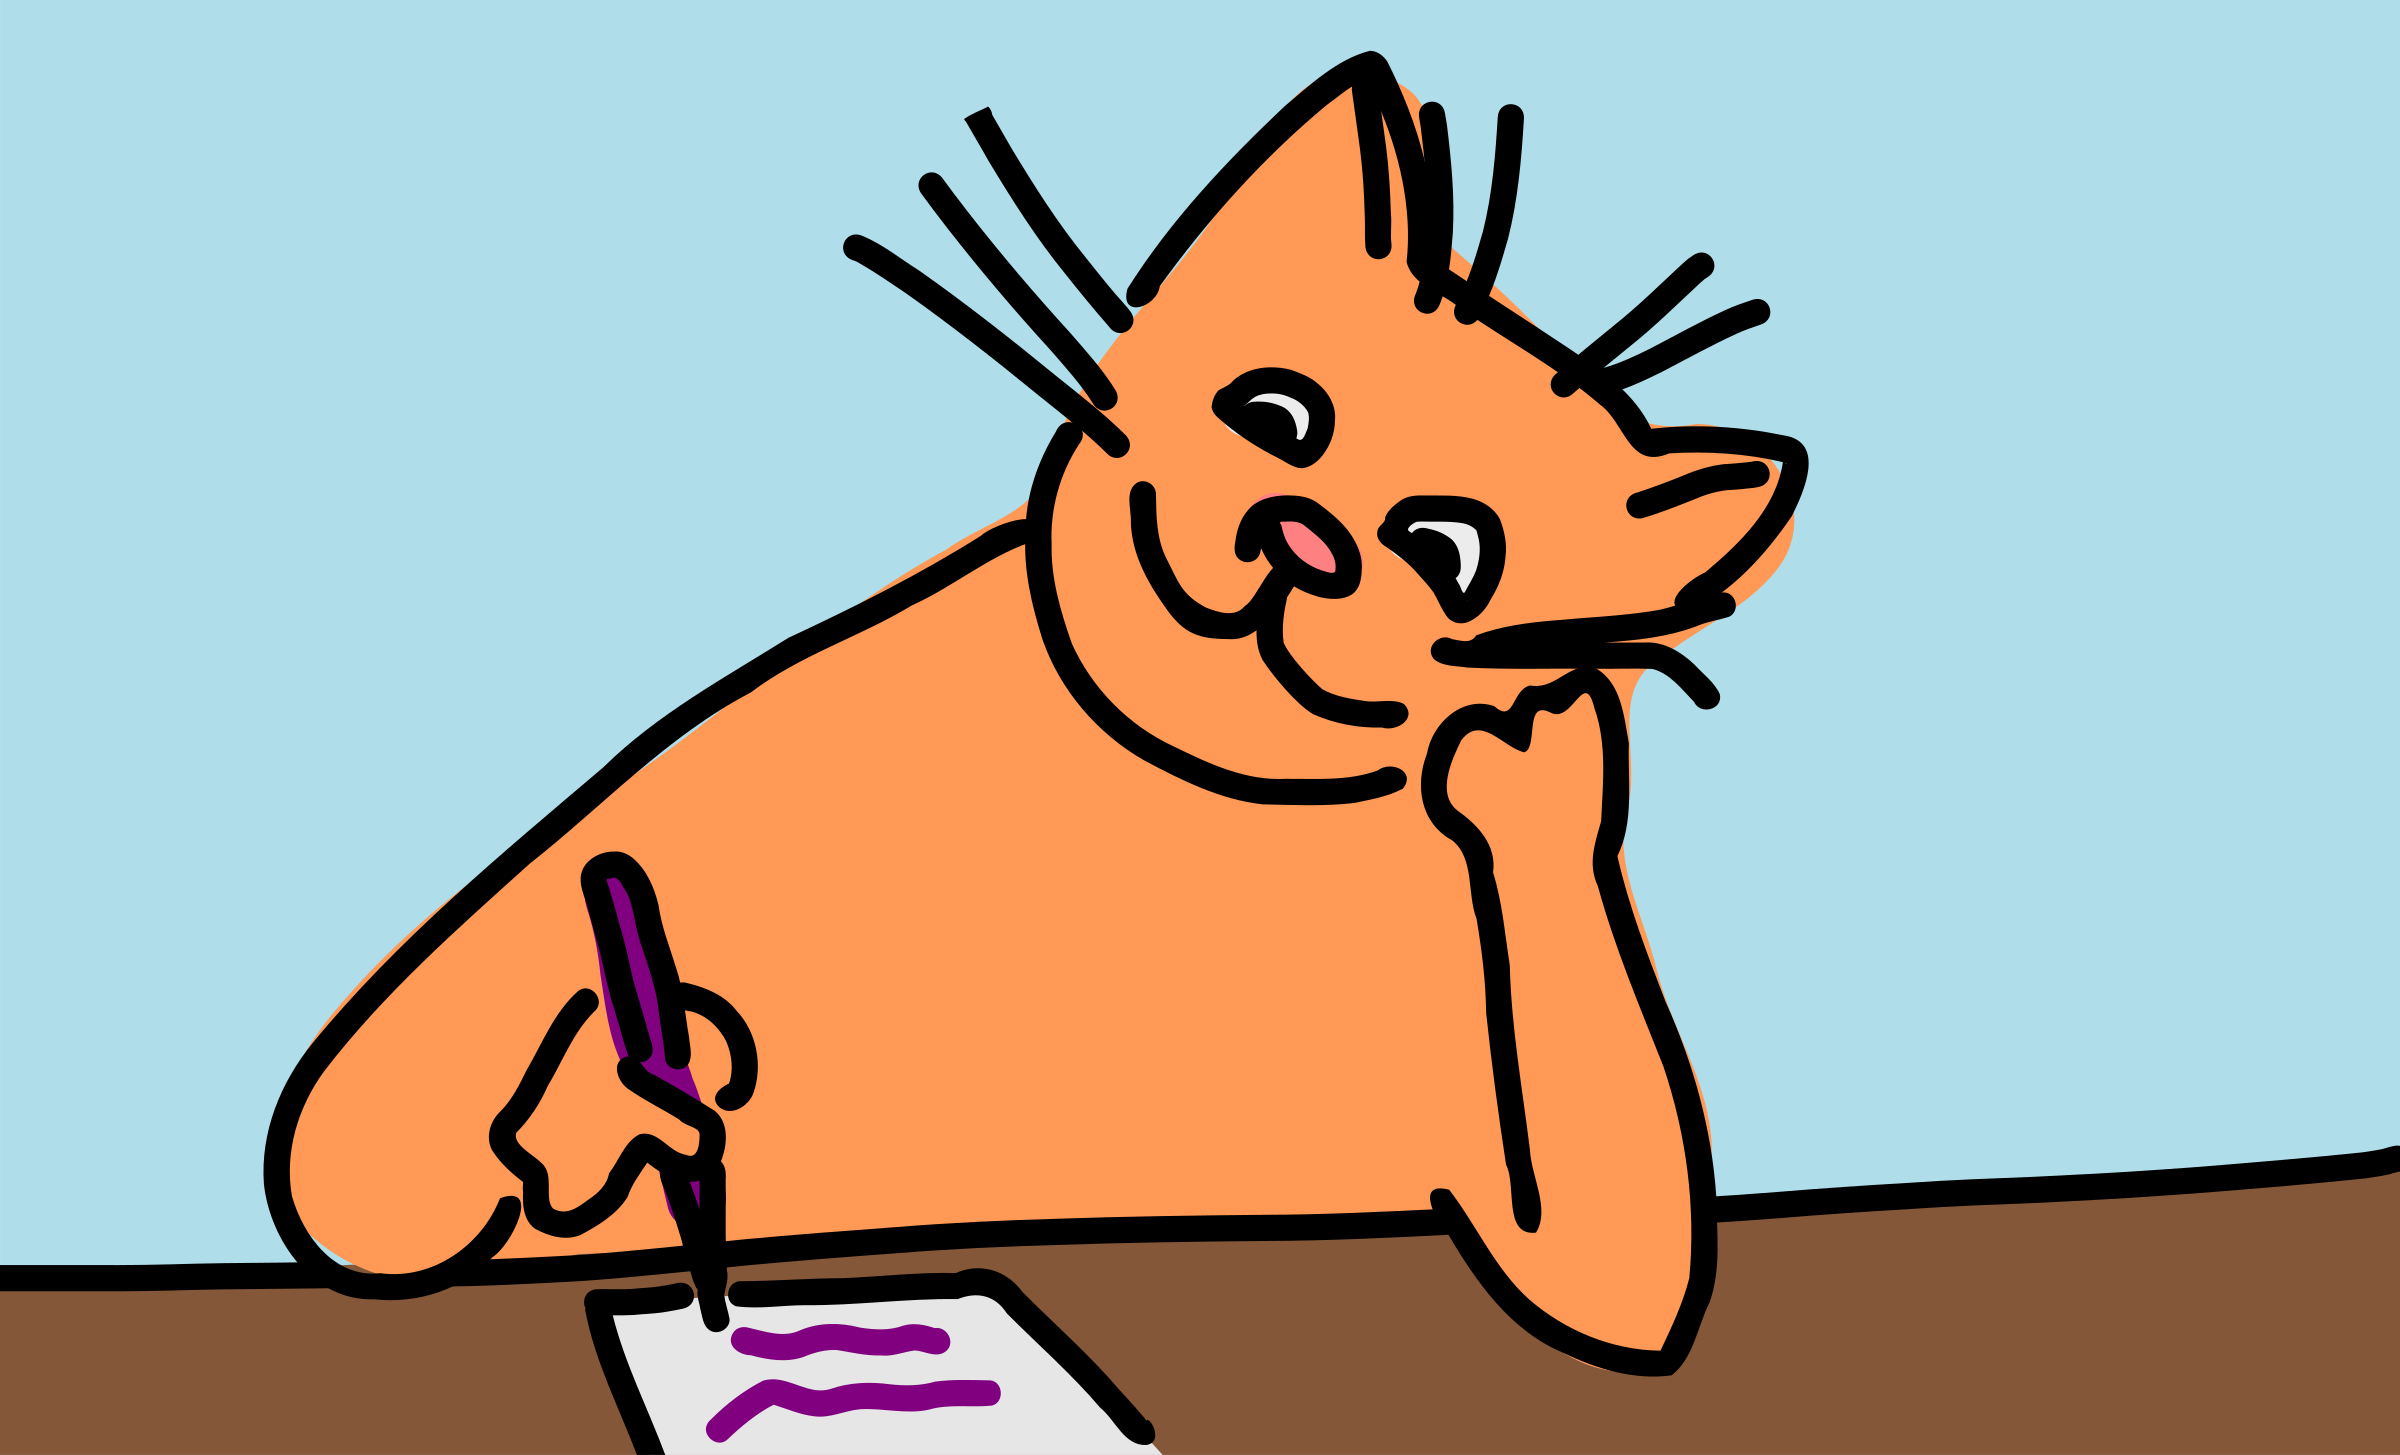 Writing cat by rones